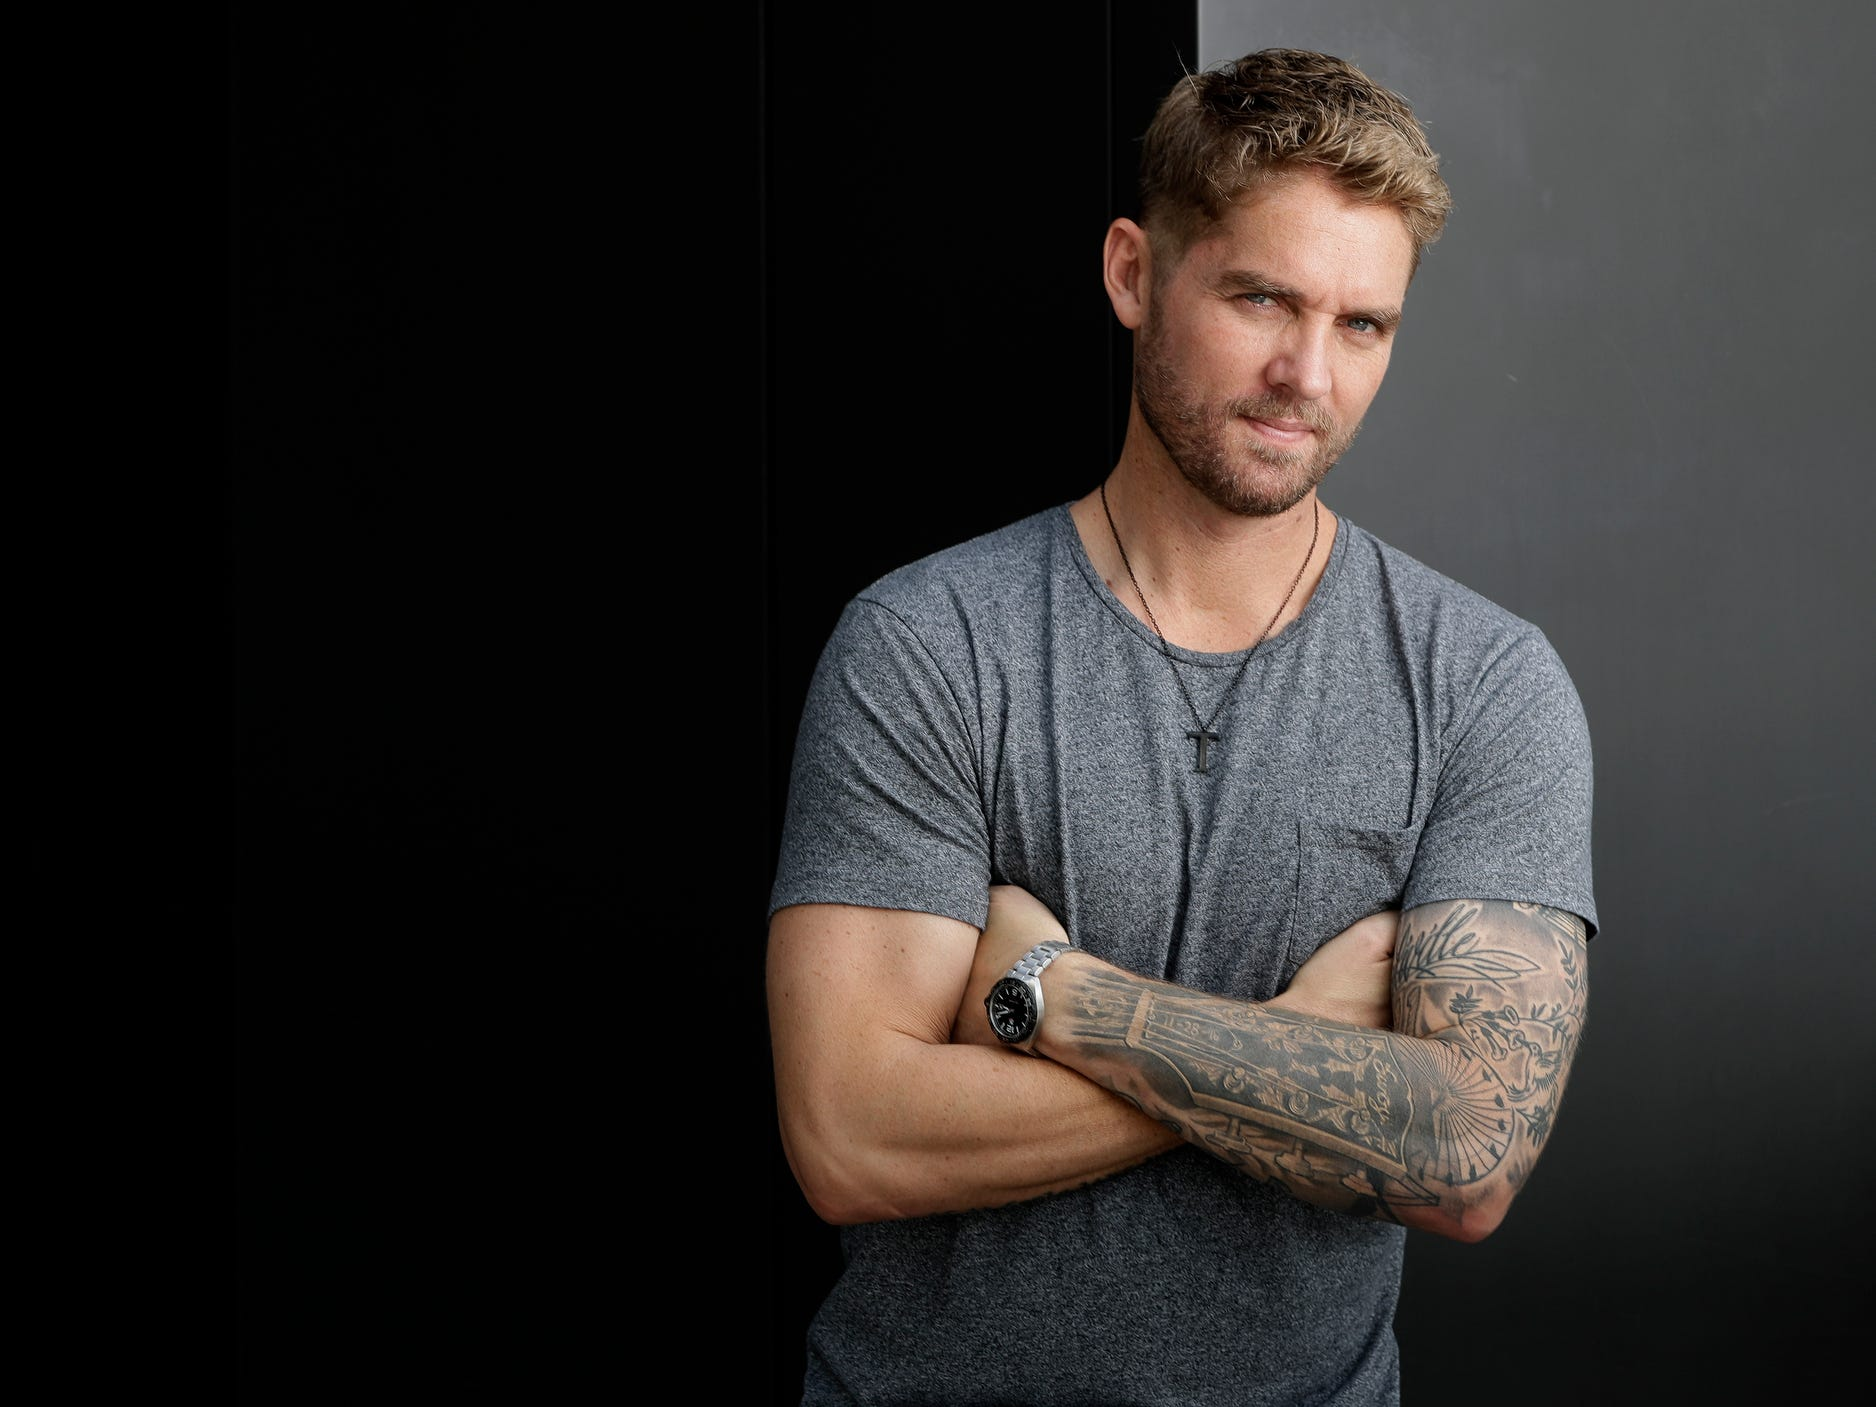 NOV. 26 THIS SHOW SAVES LIVES - MUSIC, MAGIC AND FASHION FOR ST. JUDE CHILDREN'S RESEARCH HOSPITAL WITH BRETT YOUNG, LOCASH, MORE: 7 p.m. Schermerhorn Symphony Center, $40-$105, nashvillesymphony.org